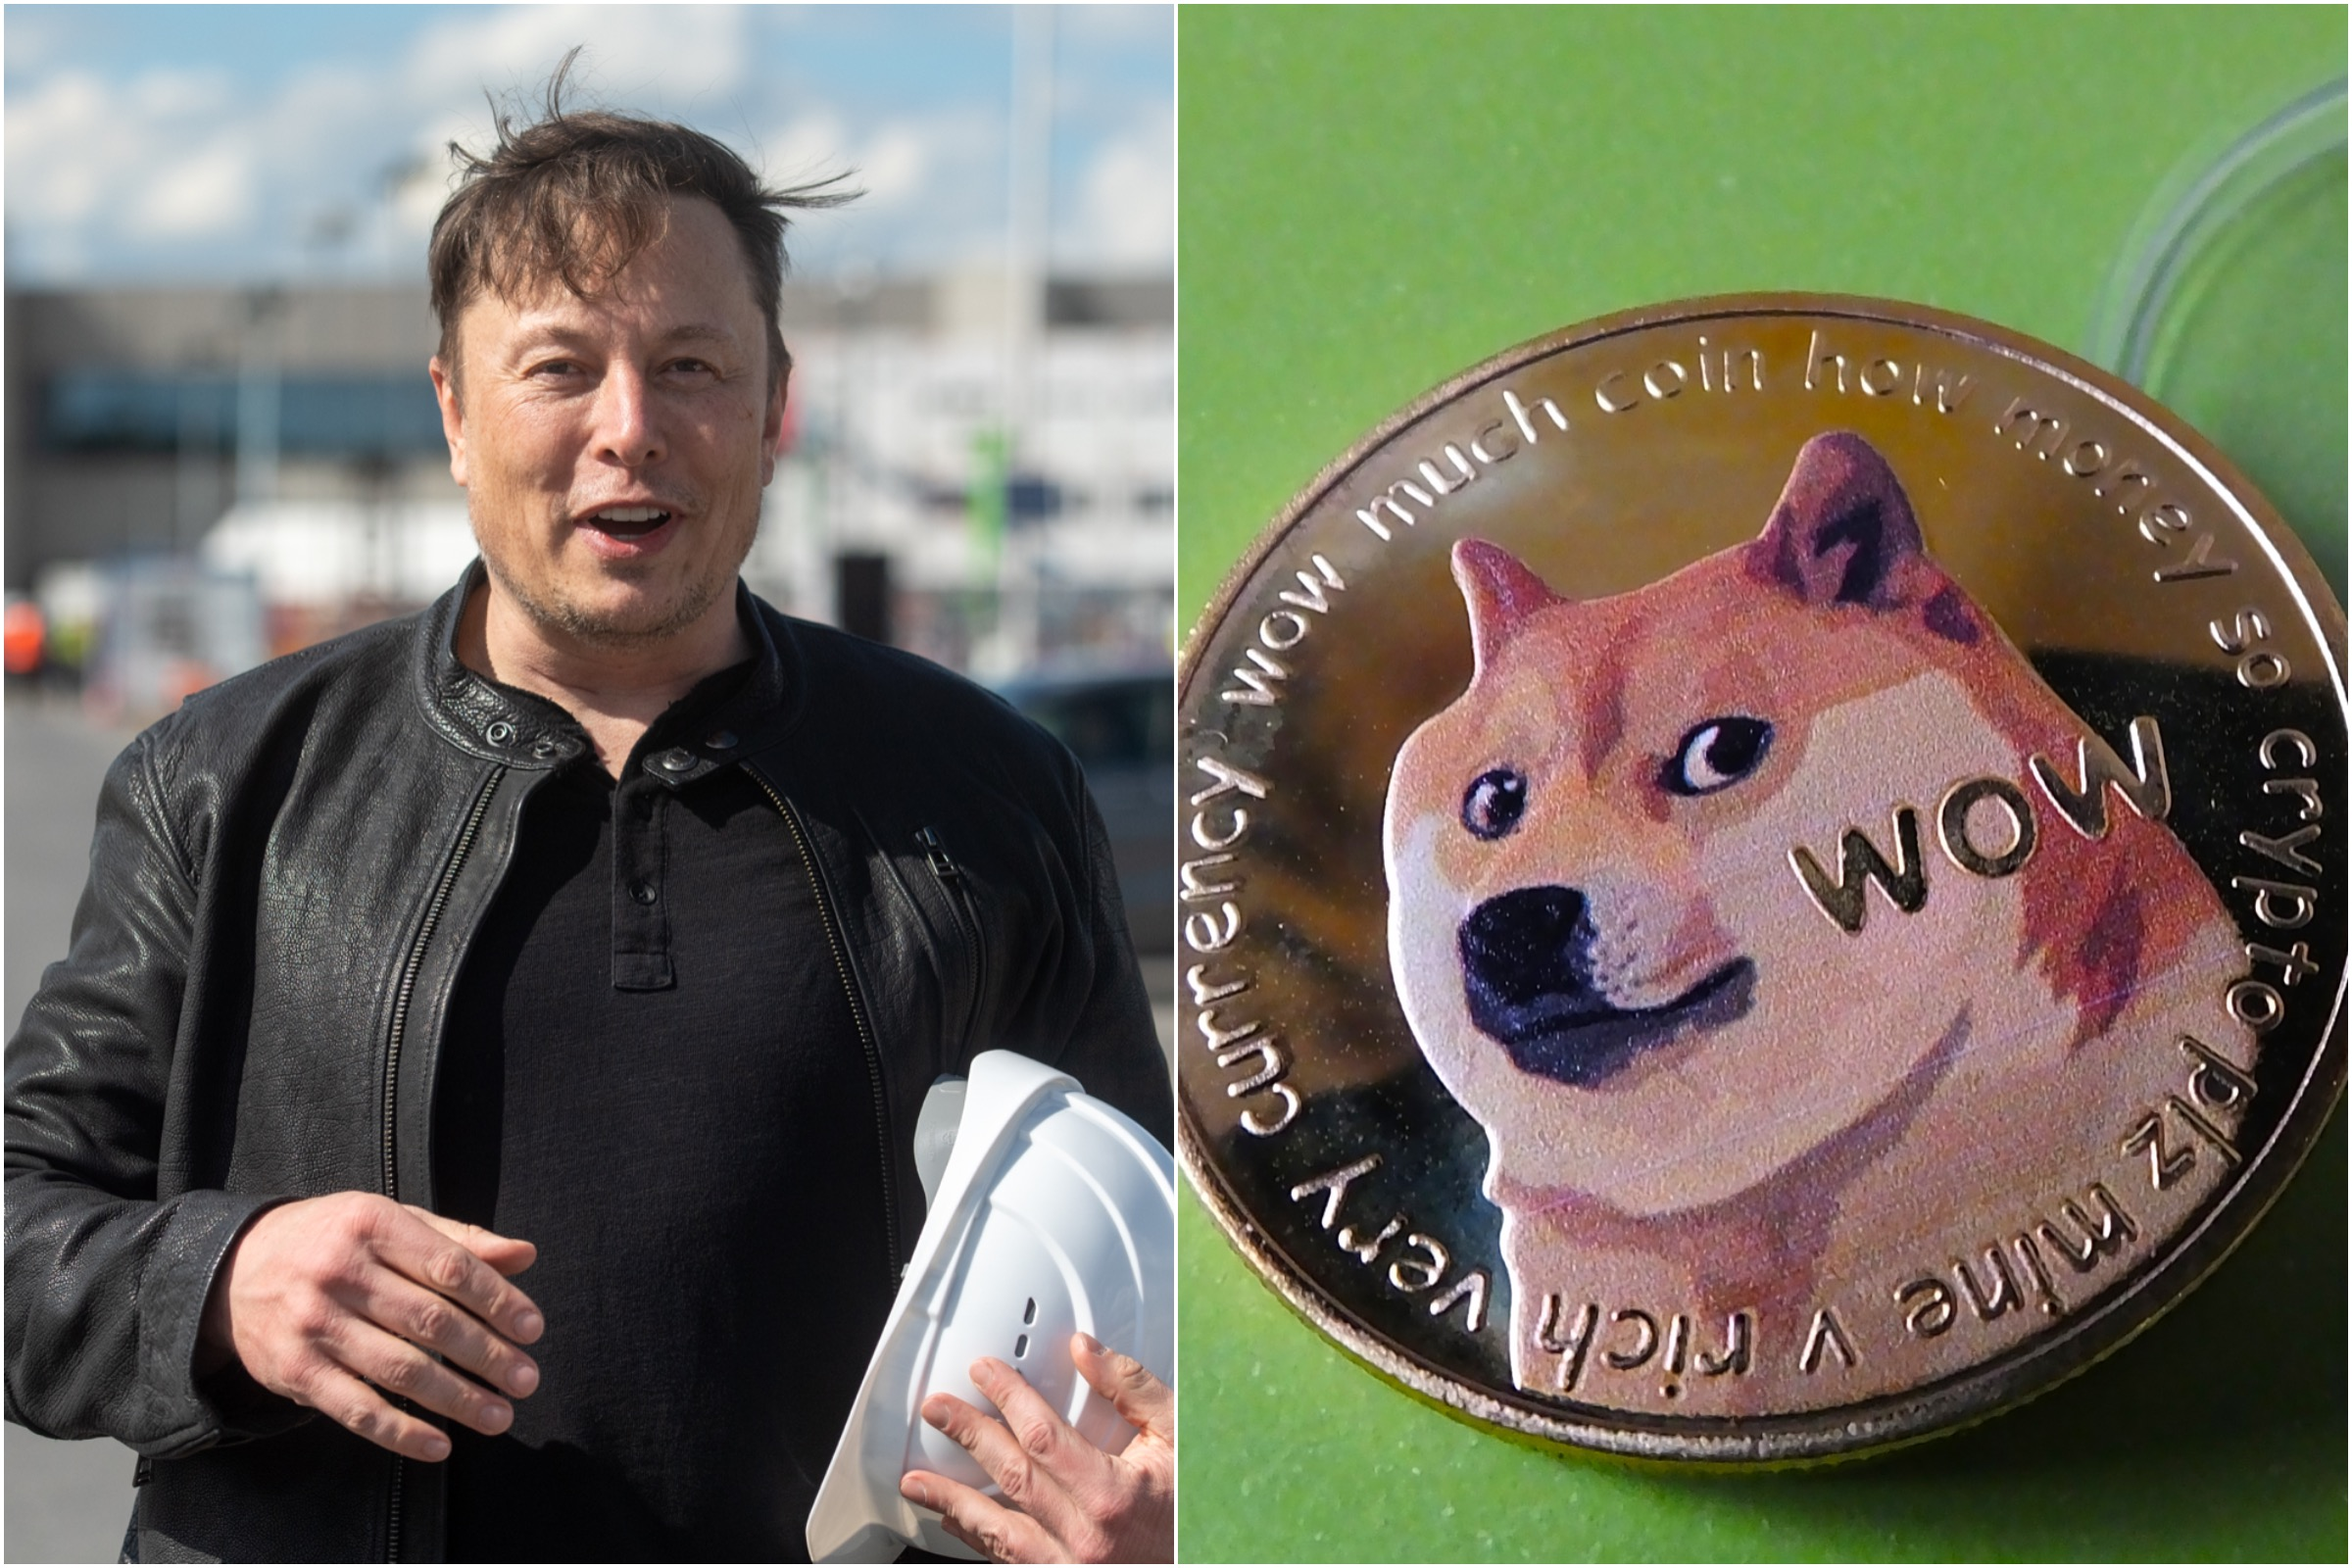 Elon Musk's birthday sees a DogeFather trend on Twitter thanks to ...